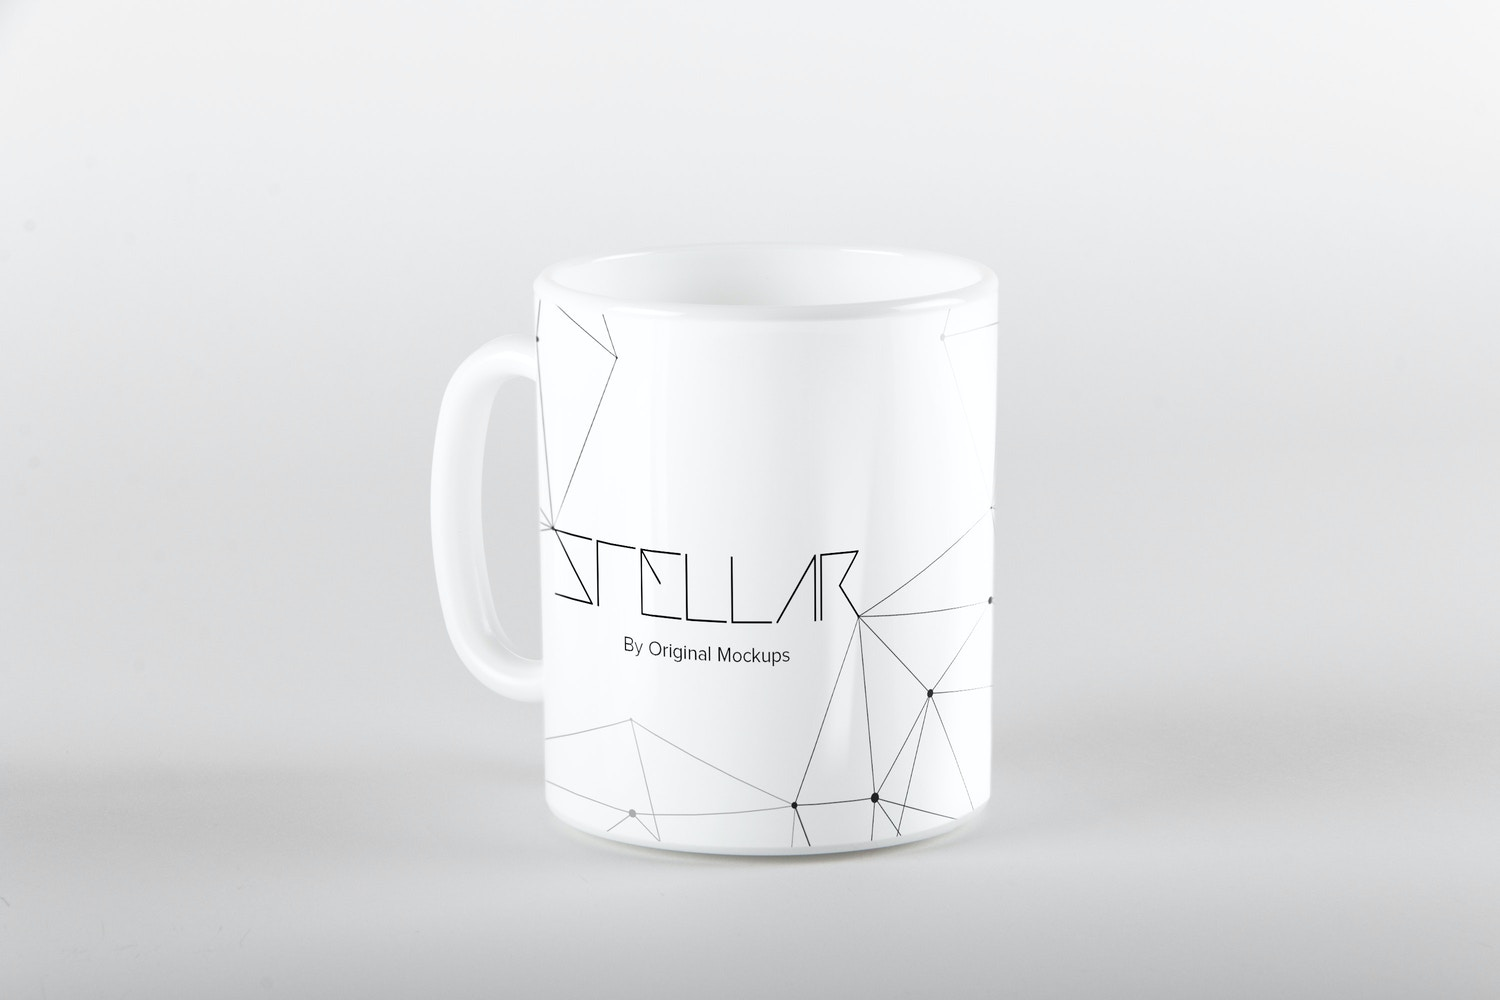 Mug Mockup 04 by Original Mockups on Original Mockups